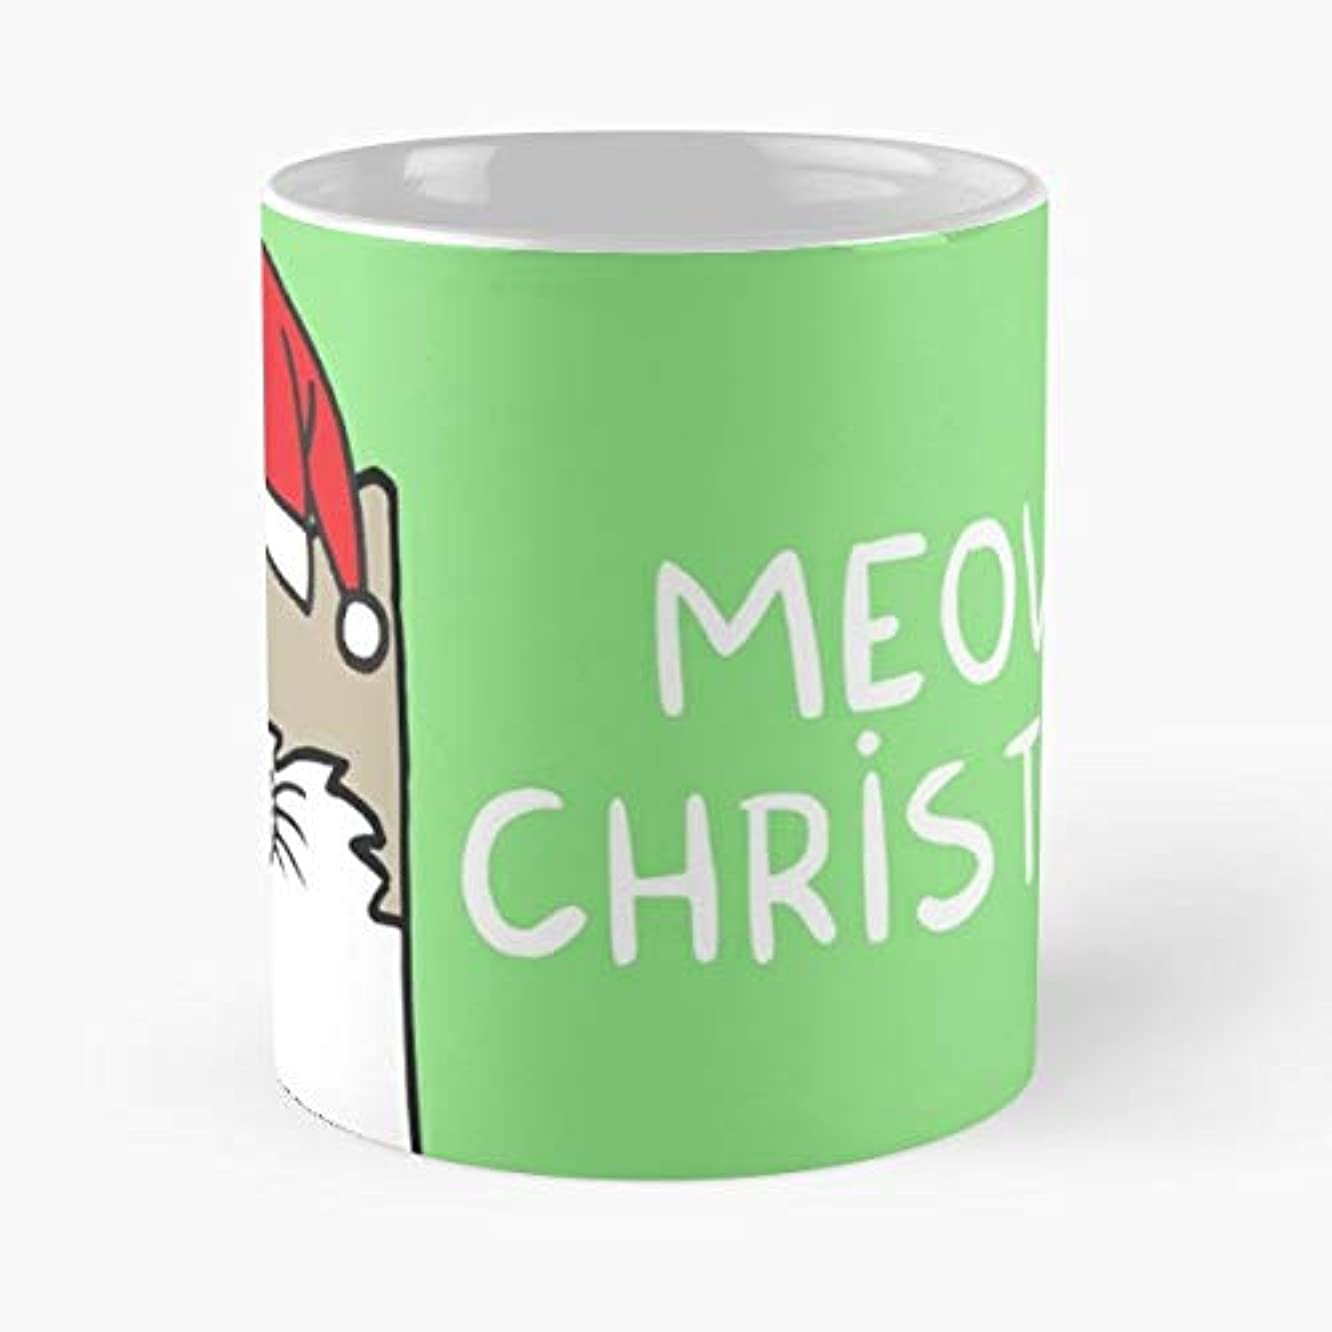 Meow Christmas Xmas Cat - 11 Oz Coffee Mugs Ceramic The Best Gift For Holidays, Item Use Daily